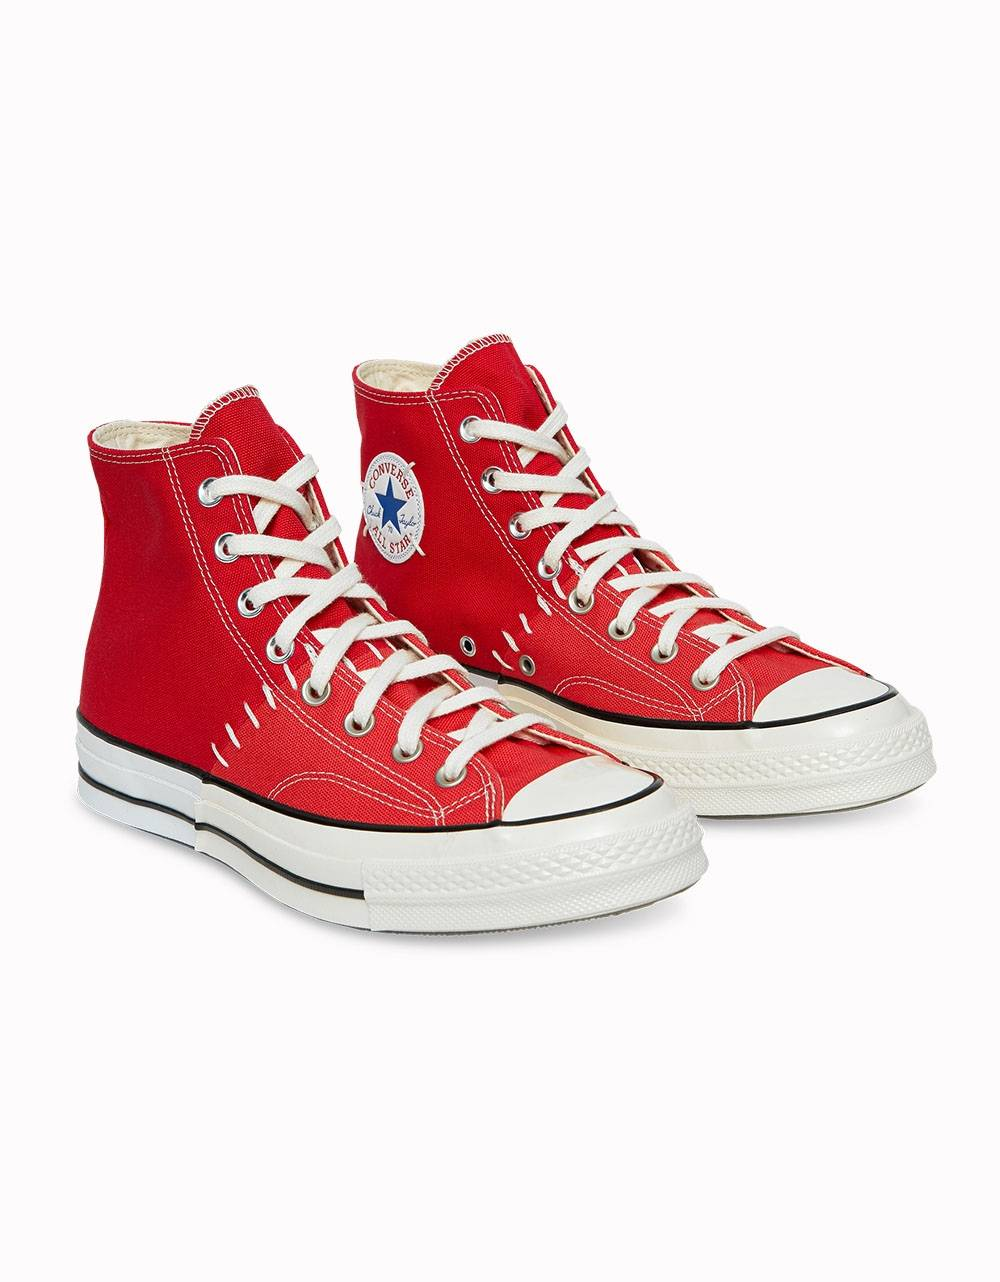 Converse Woman Chuck Taylor 70 Recostructed High ltd - red/sedona red/egret Converse Sneakers 116,39€